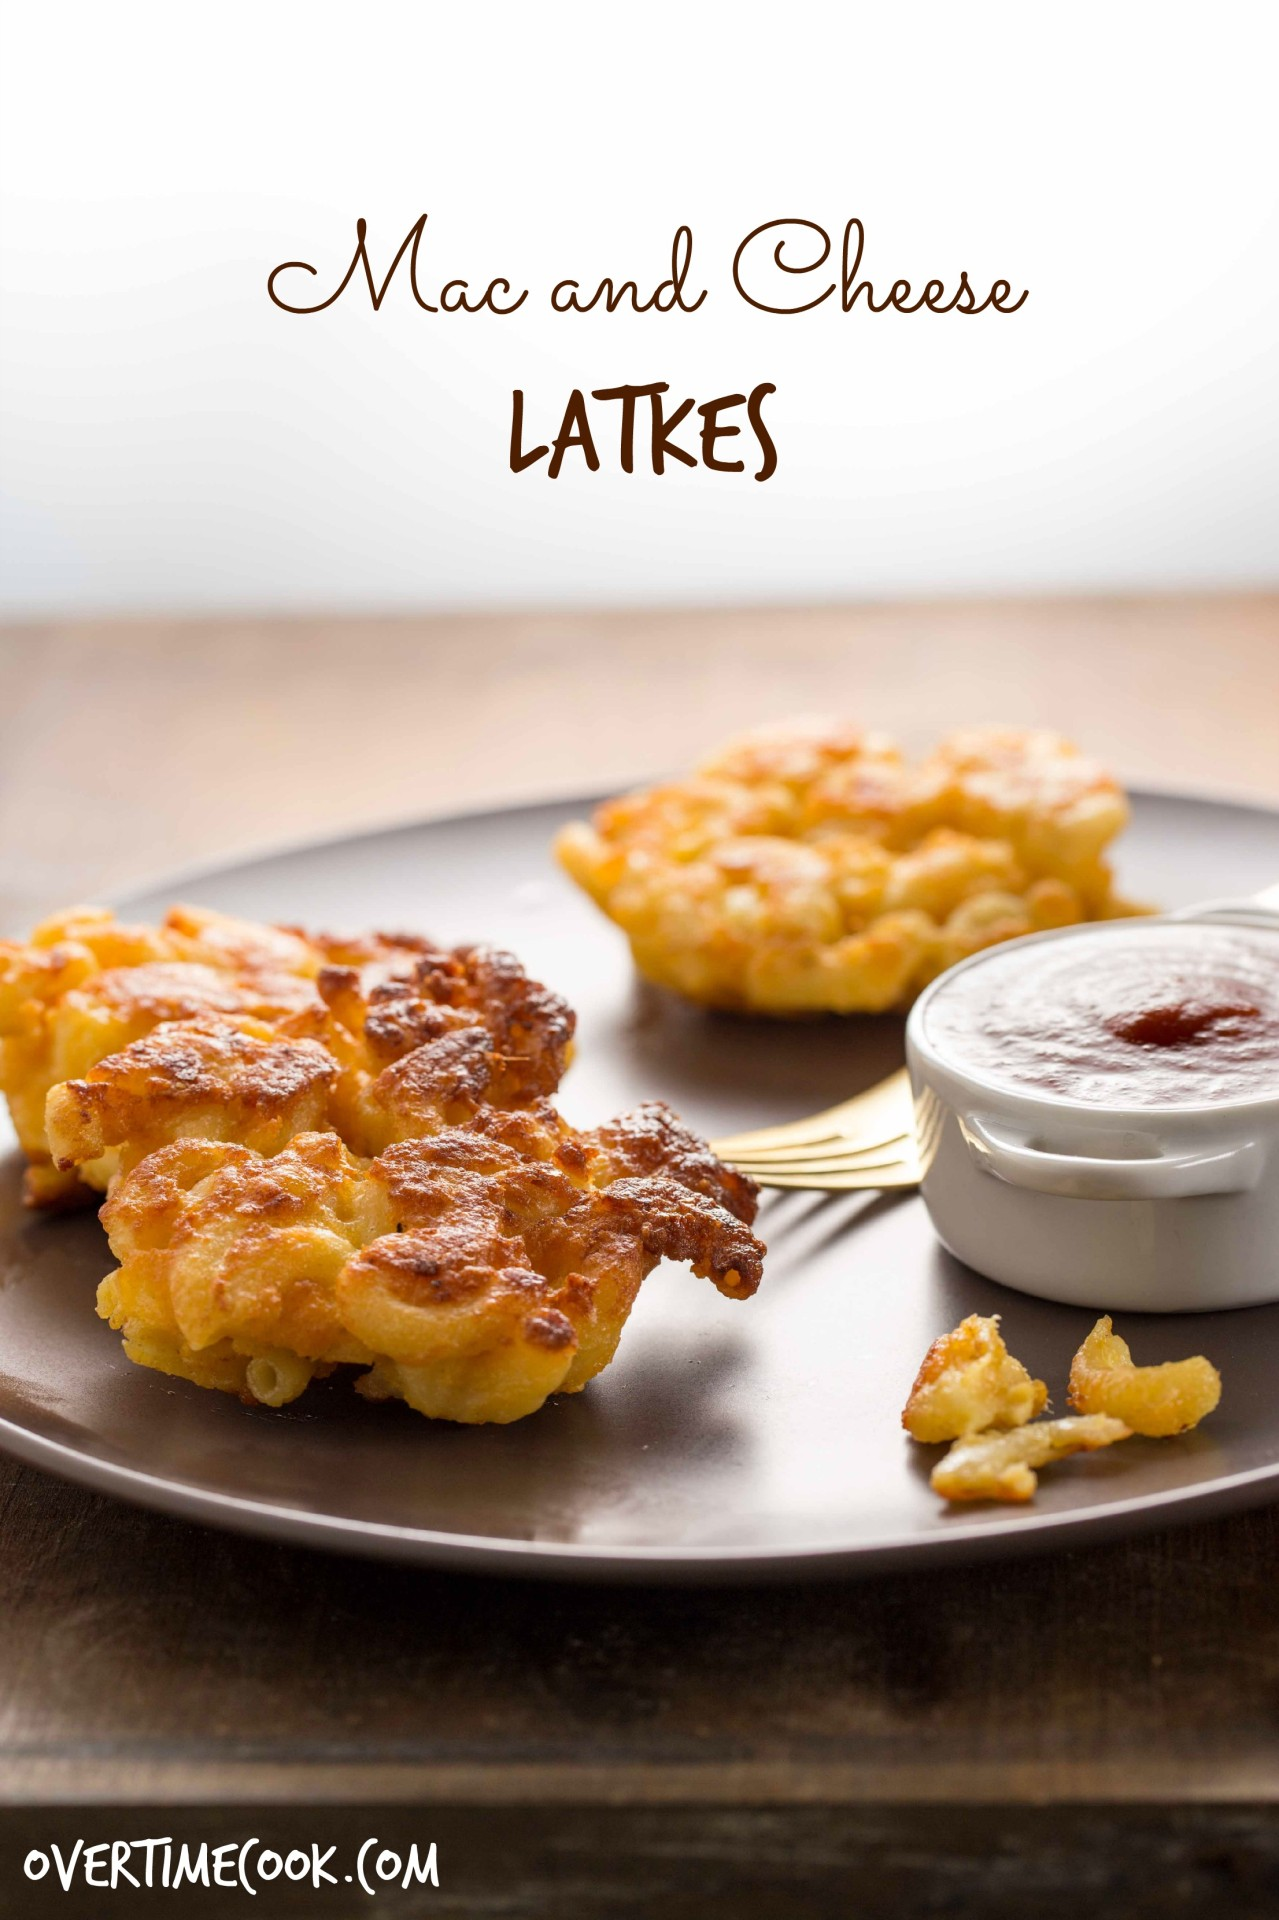 Mac and cheese latkes and a chanukah blog party and double giveaway mac and cheese latkes on overtimecook forumfinder Choice Image